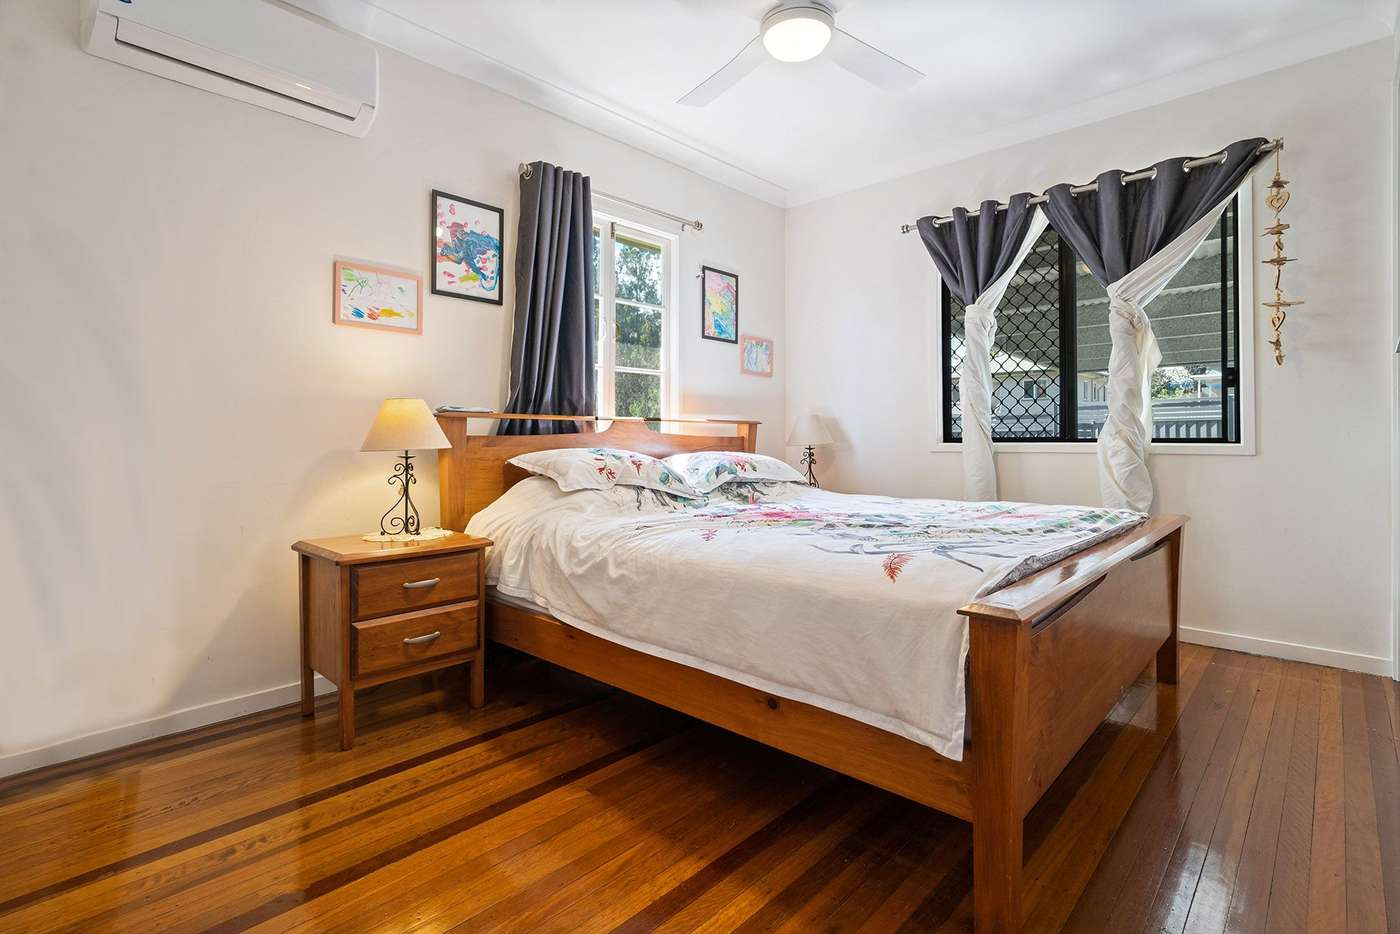 Fifth view of Homely house listing, 15 Camlet Street, Mount Gravatt East QLD 4122